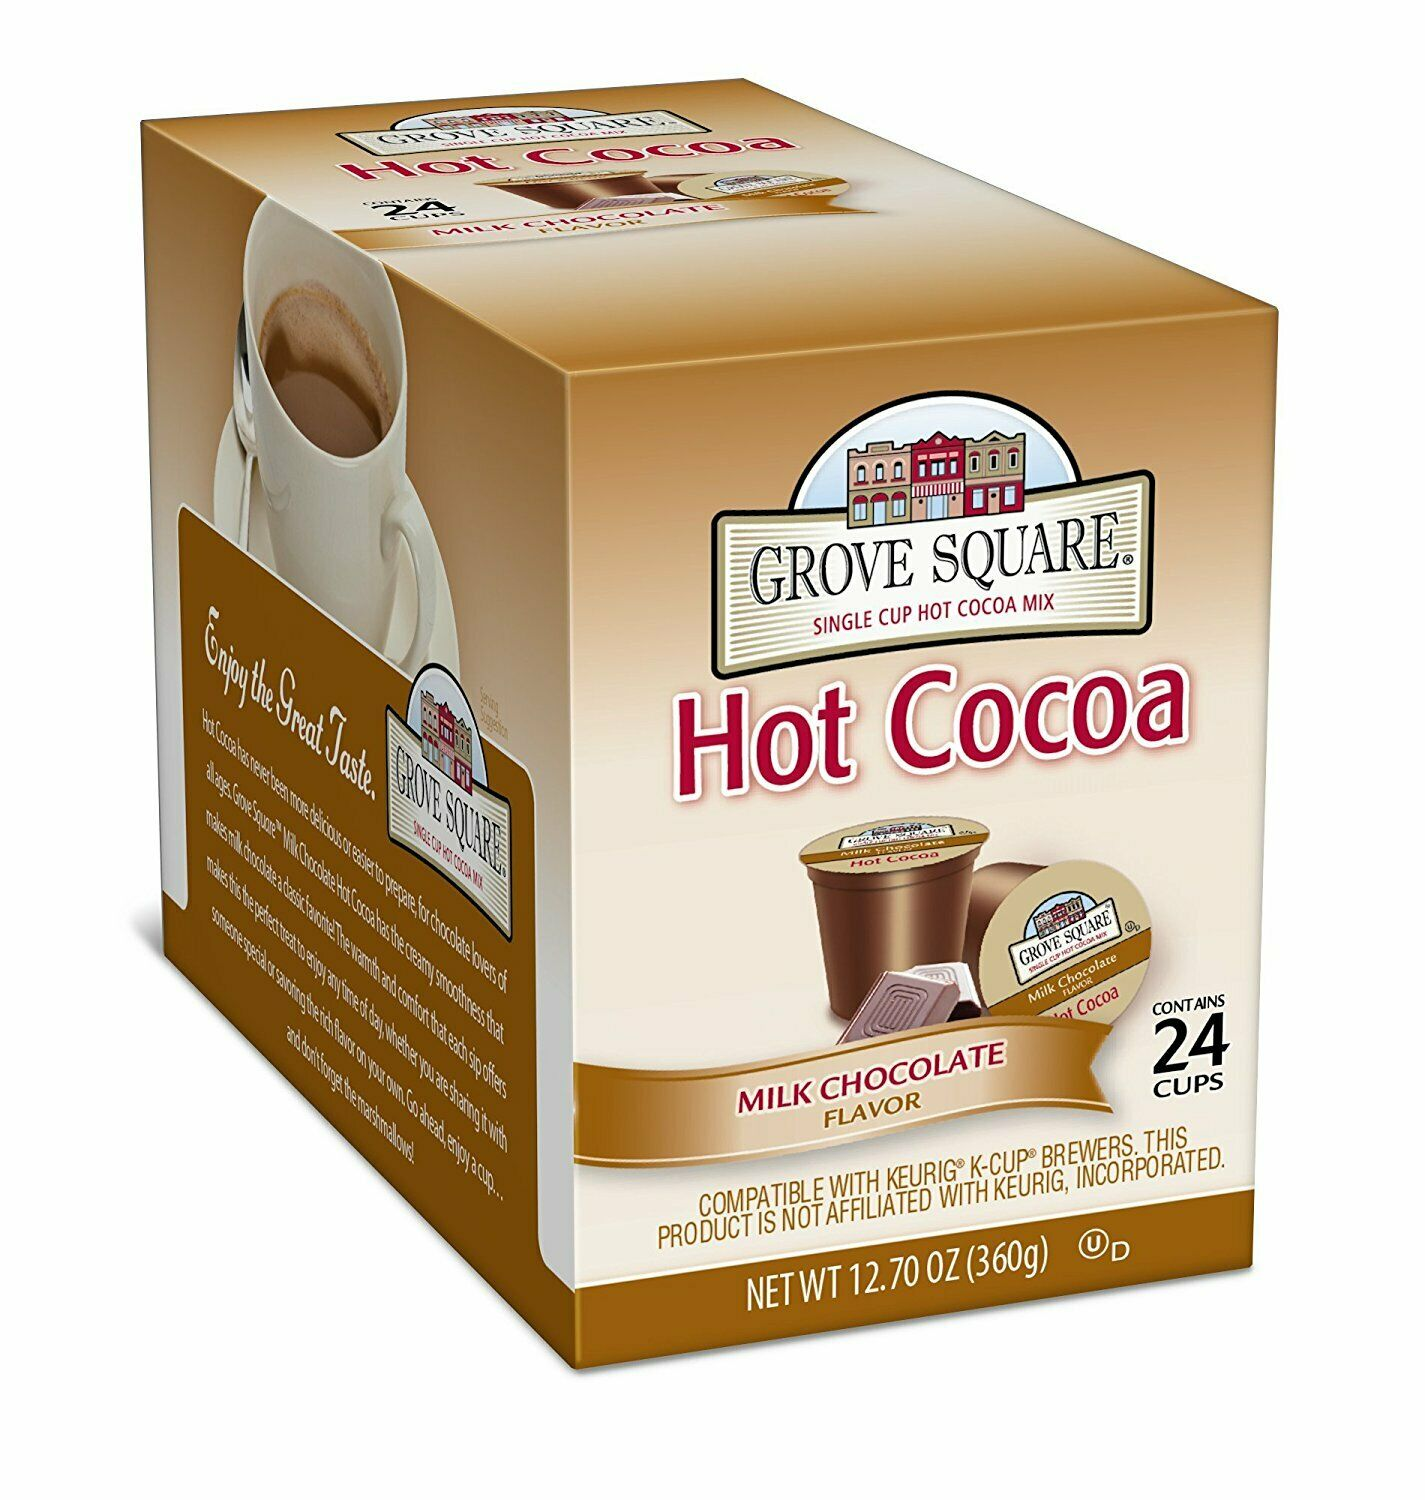 Grove Square Hot Cocoa Milk Chocolate